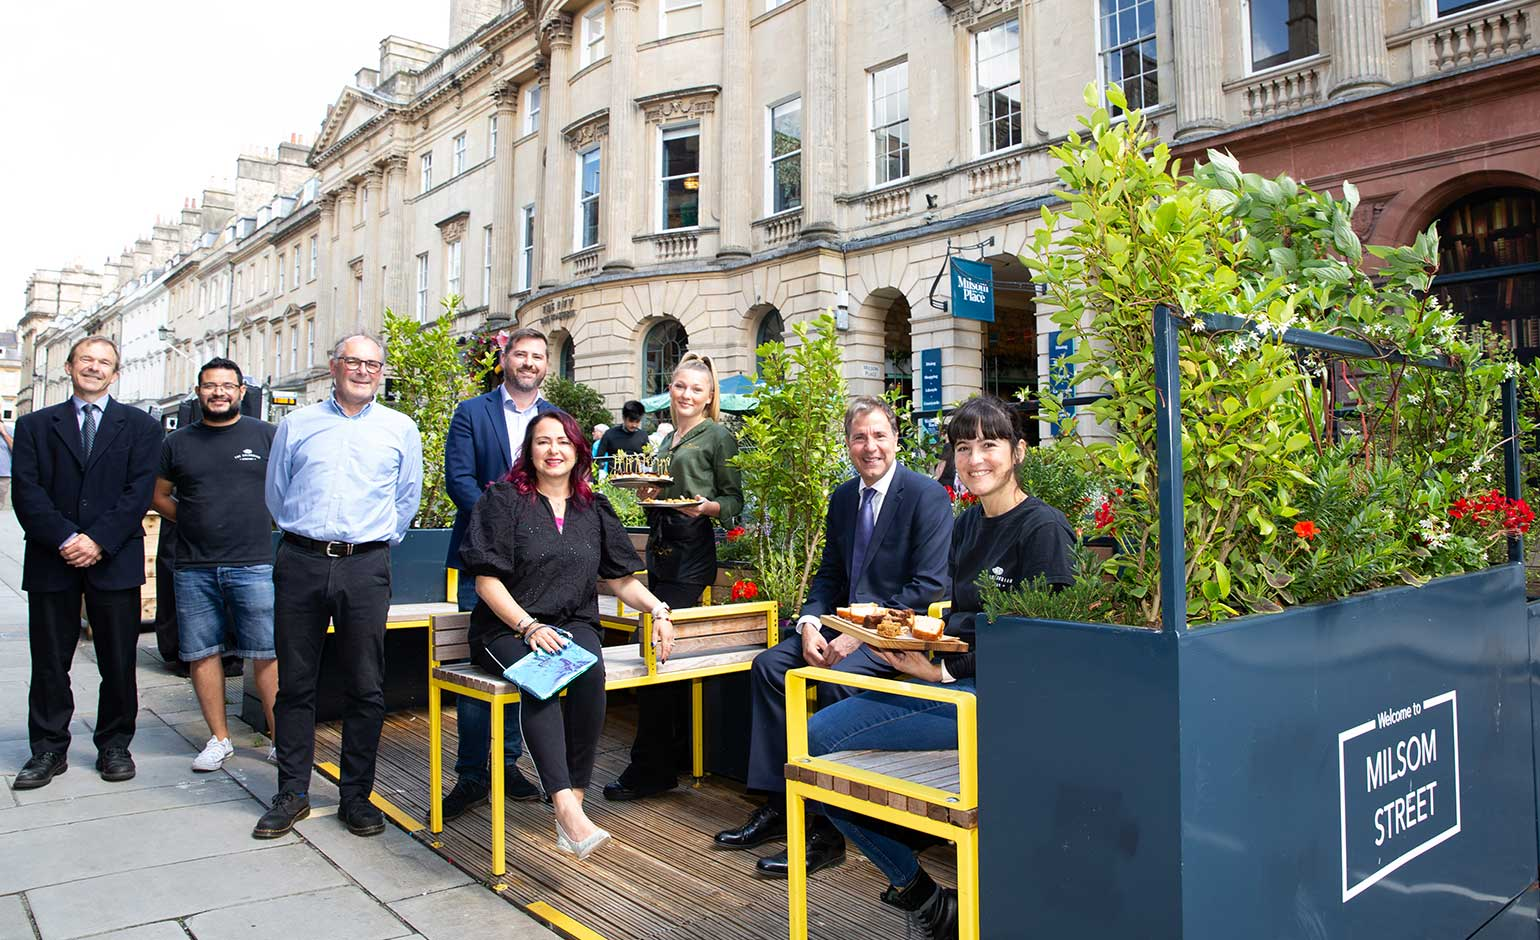 Metro Mayor visits Bath to find out more about city centre improvements